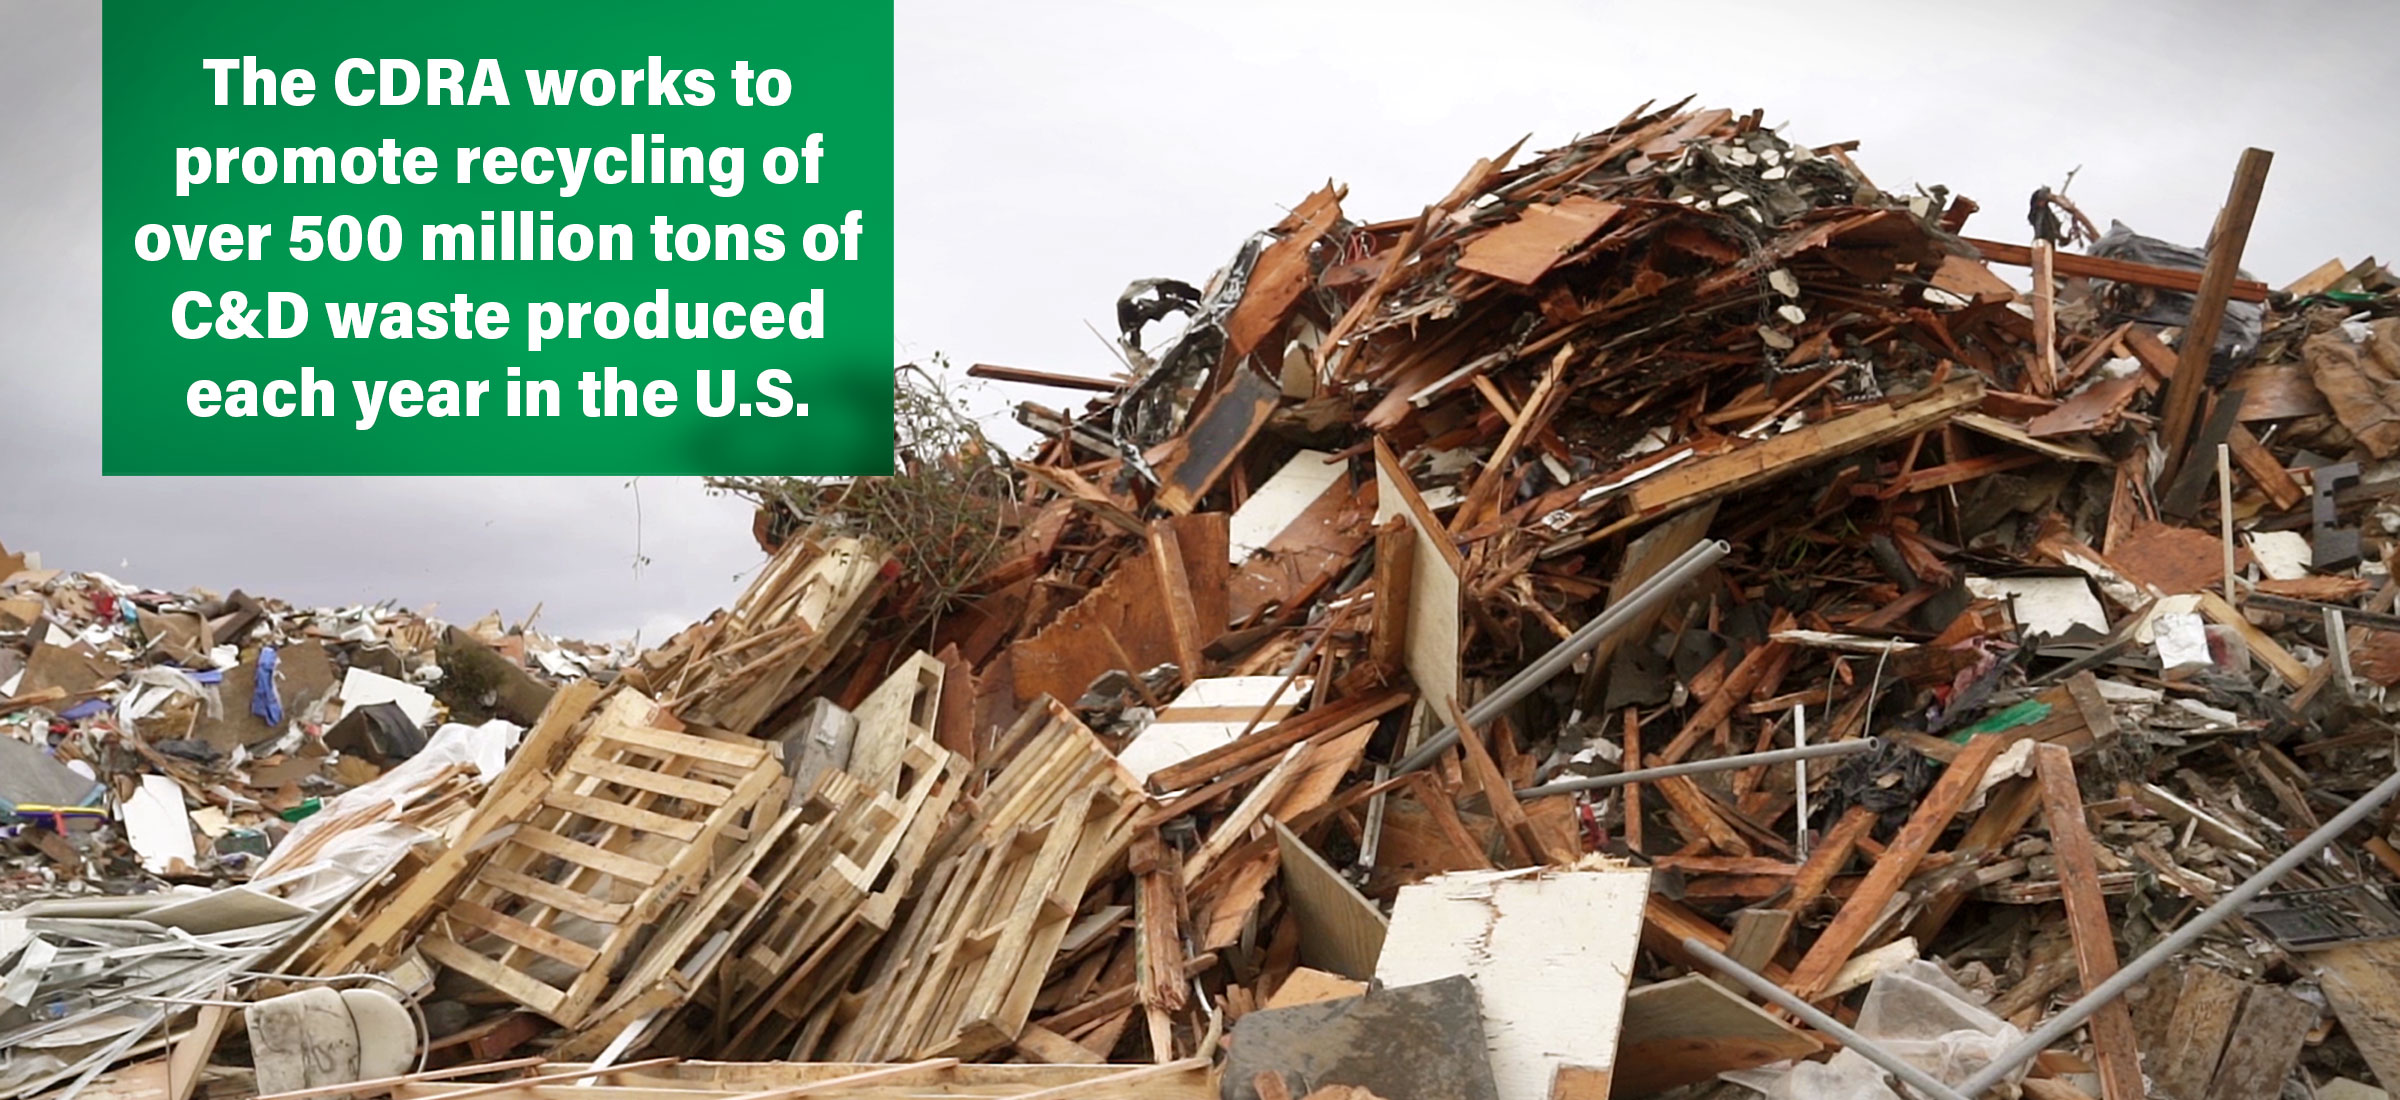 The CDRA works to promote recycling of over 500 million tons of C&D waste produced each year in the U.S.